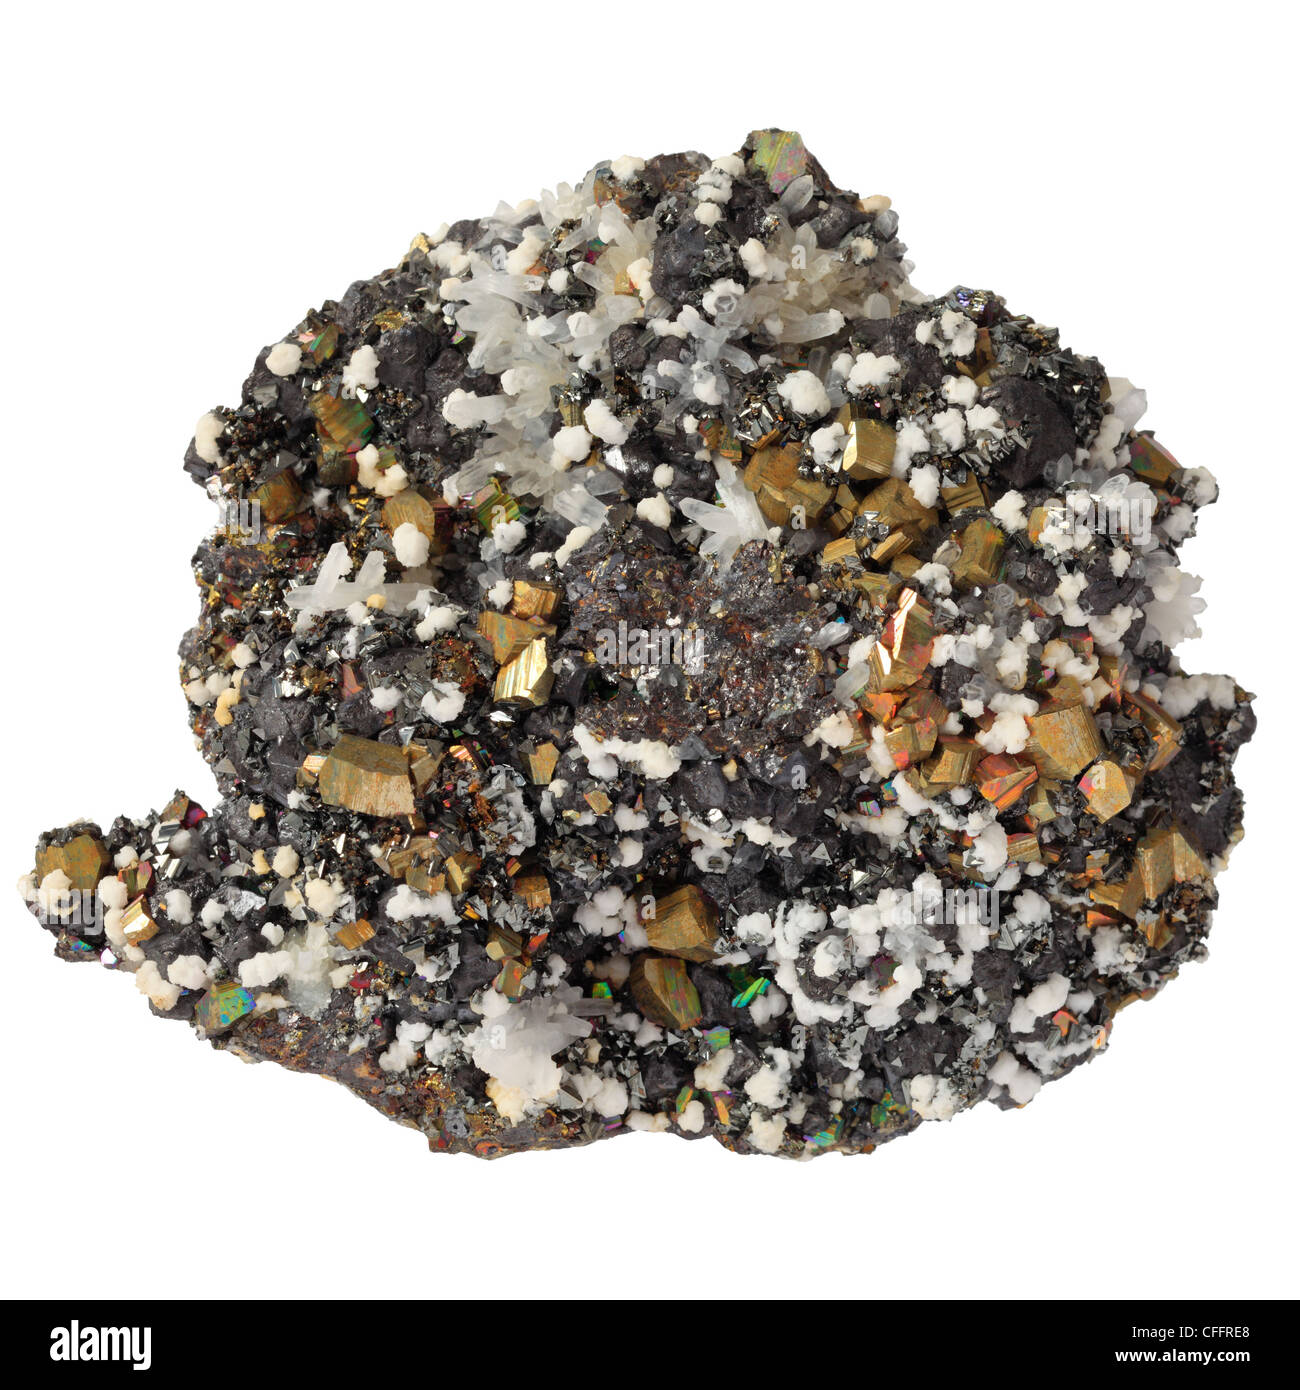 Mineral of sphalerite, iron pyrite, calcite and quartz from the Andes. - Stock Image